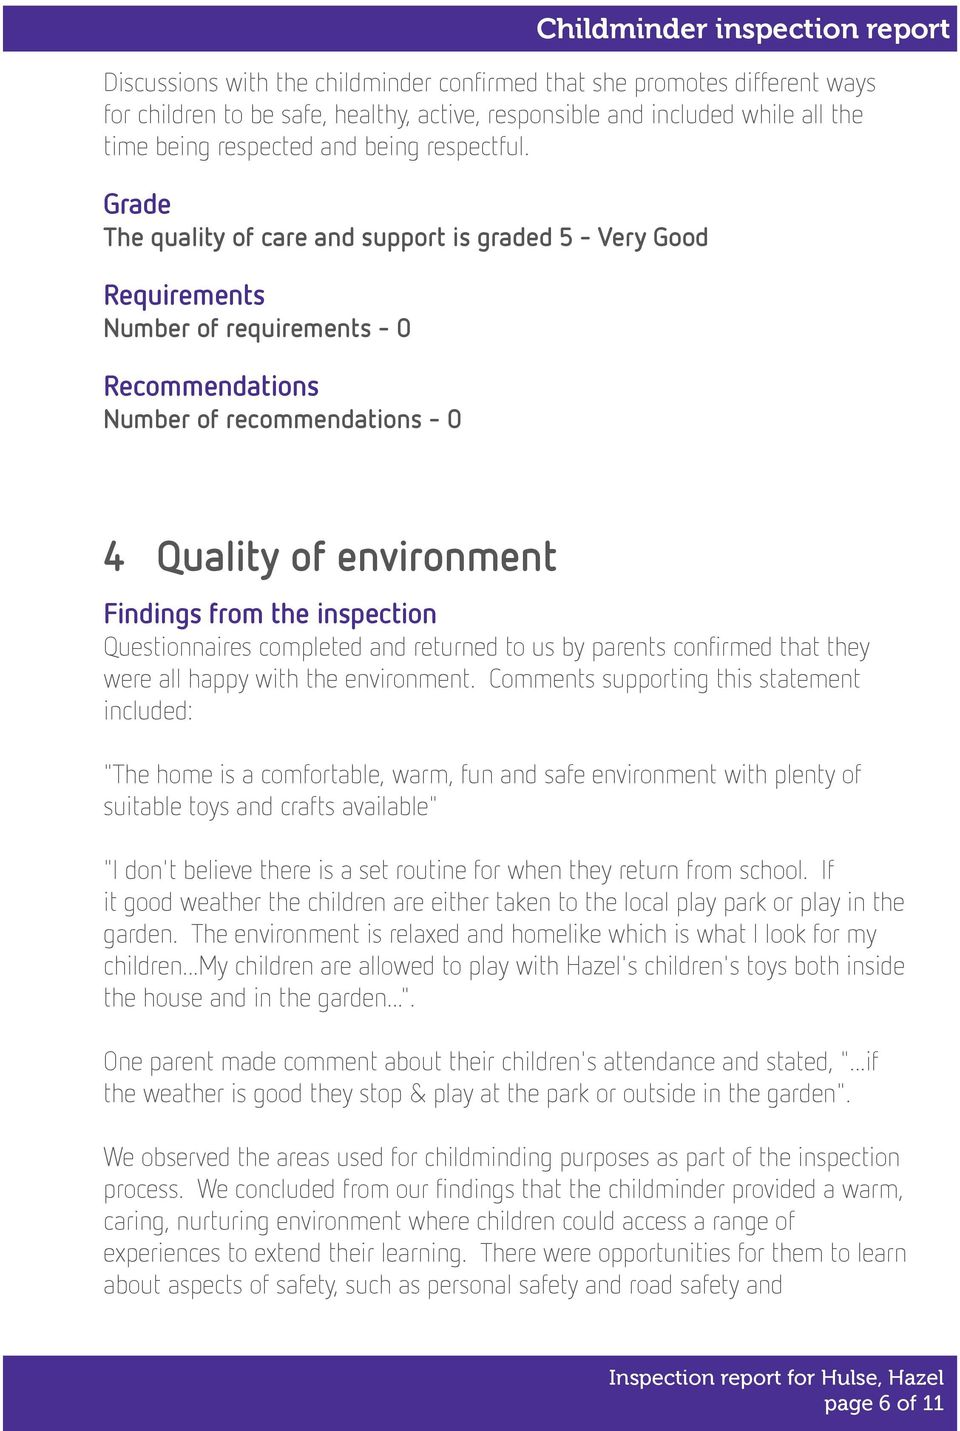 environment Findings from the inspection Questionnaires completed and returned to us by parents confirmed that they were all happy with the environment.